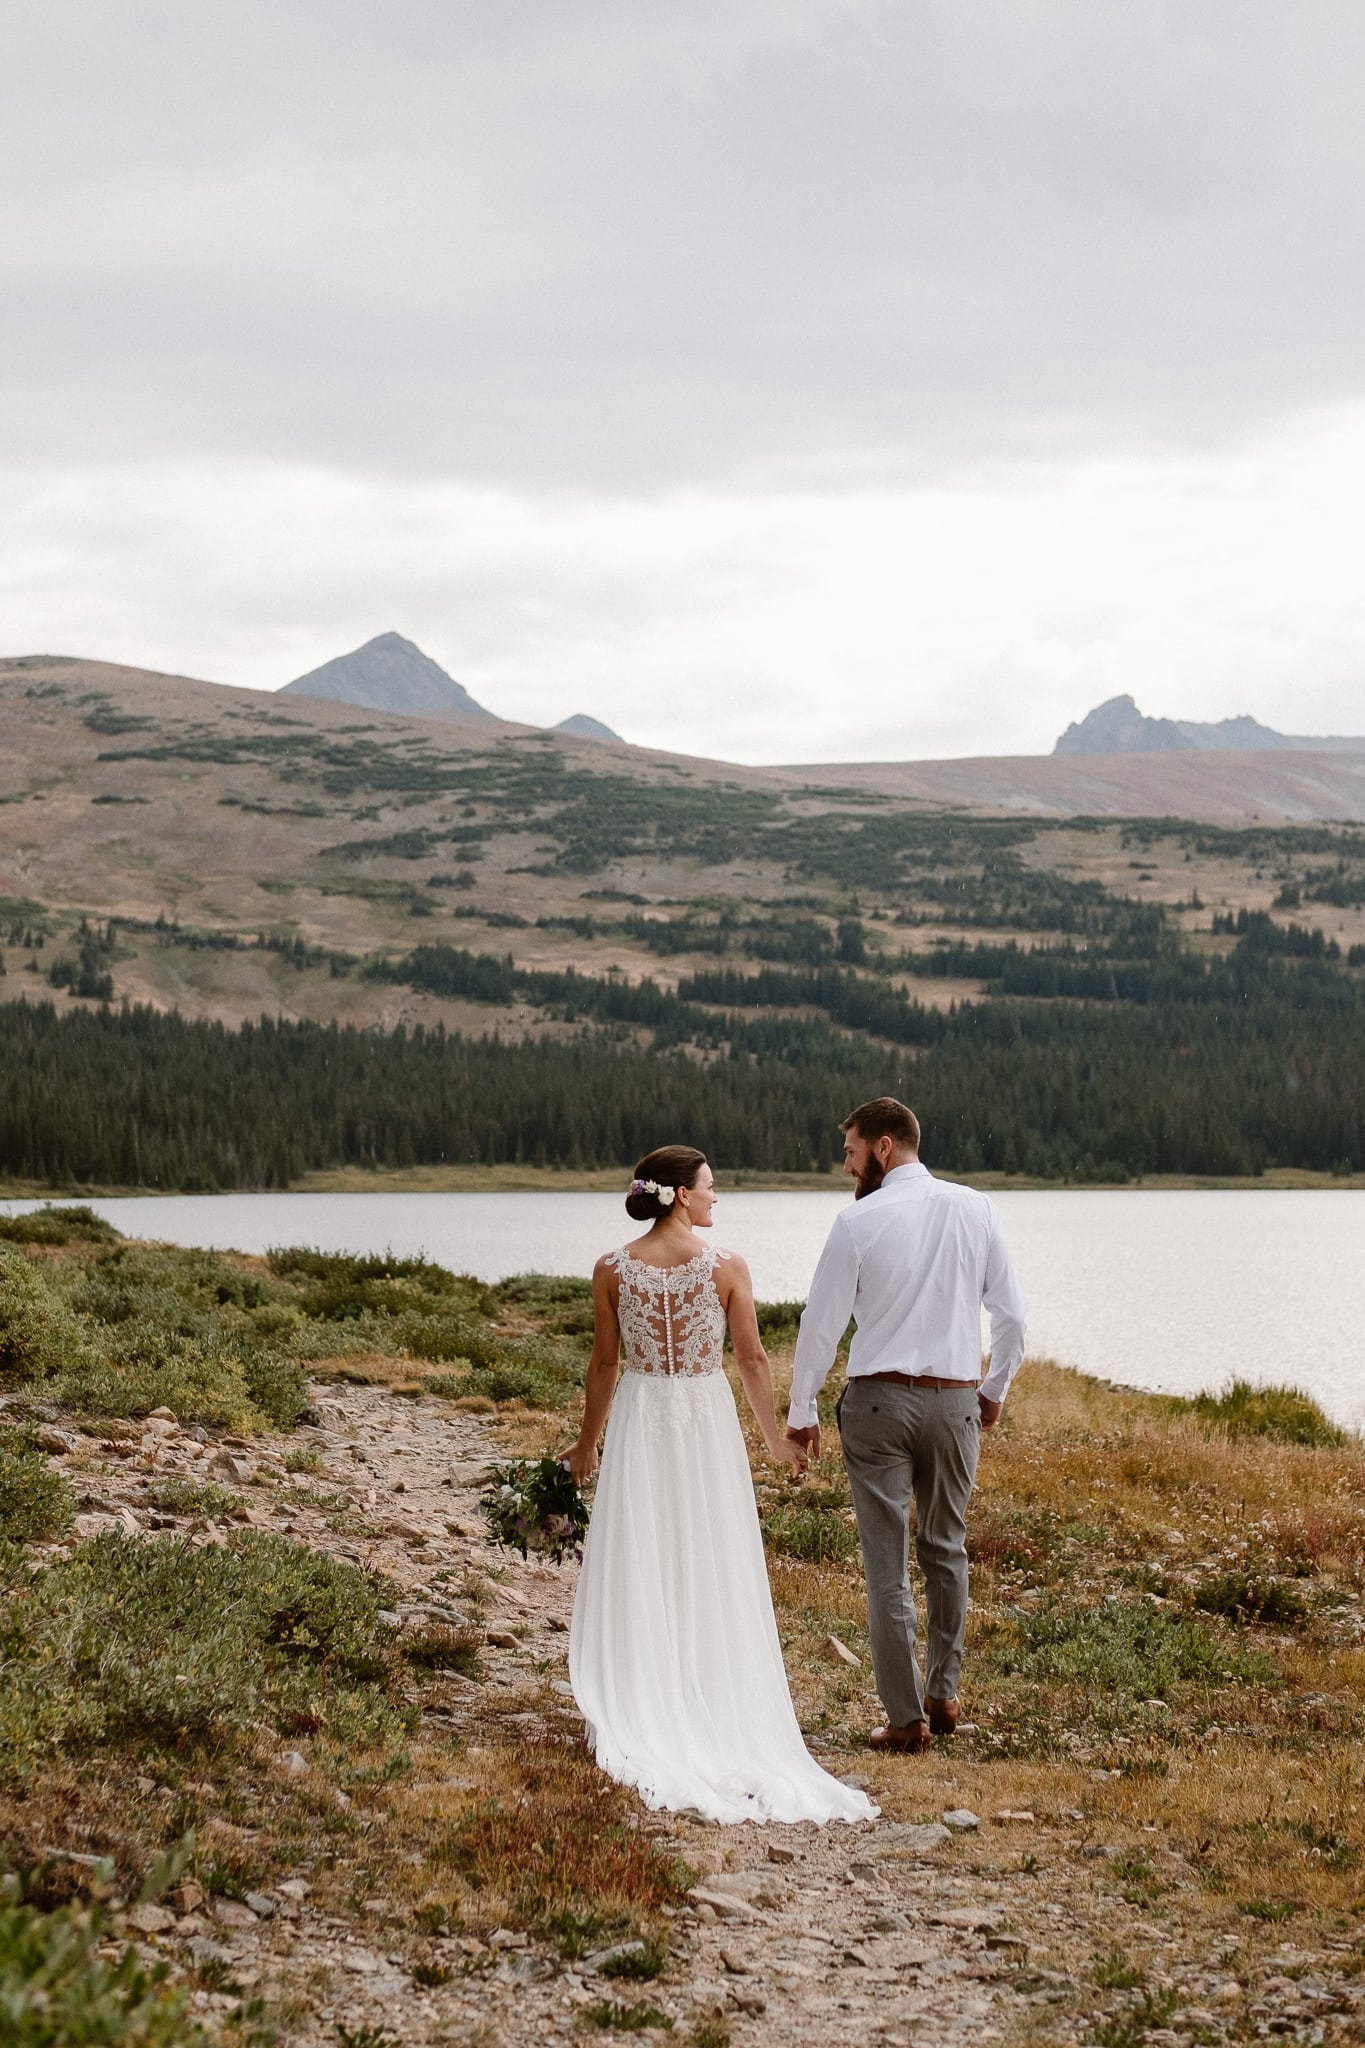 Colorado mountain elopement photographer, alpine lake adventure wedding, Boulder wedding photographer, bride and groom portraits in mountains, laidback boho wedding, hiking elopement